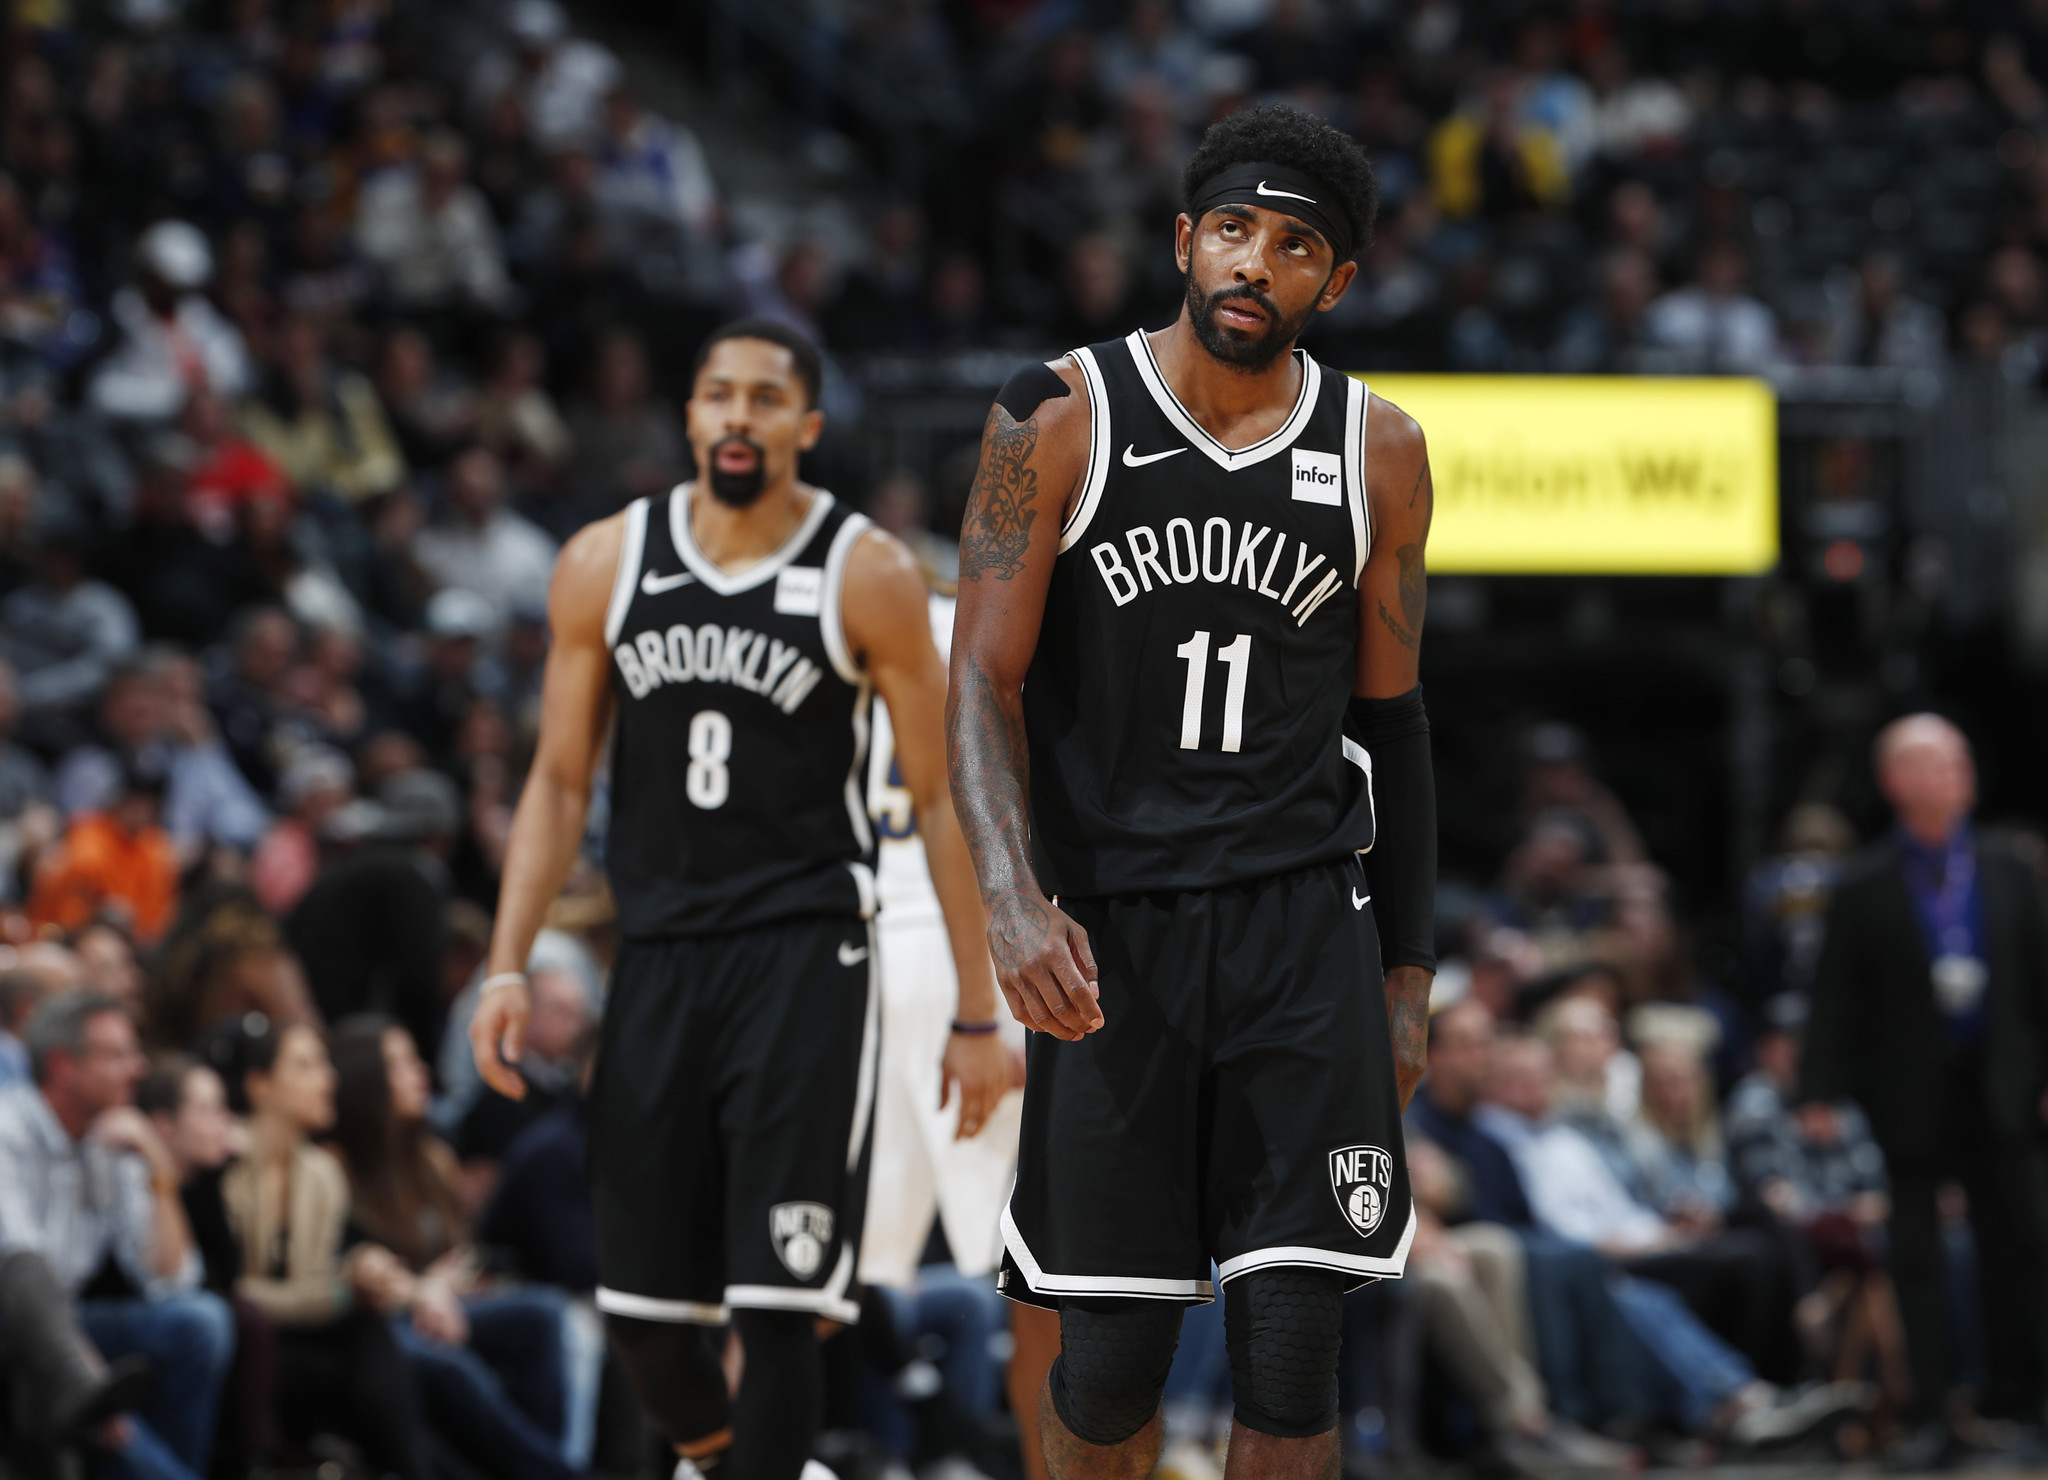 Kyrie Irving has four times as many All-Star votes as Spencer Dinwiddie